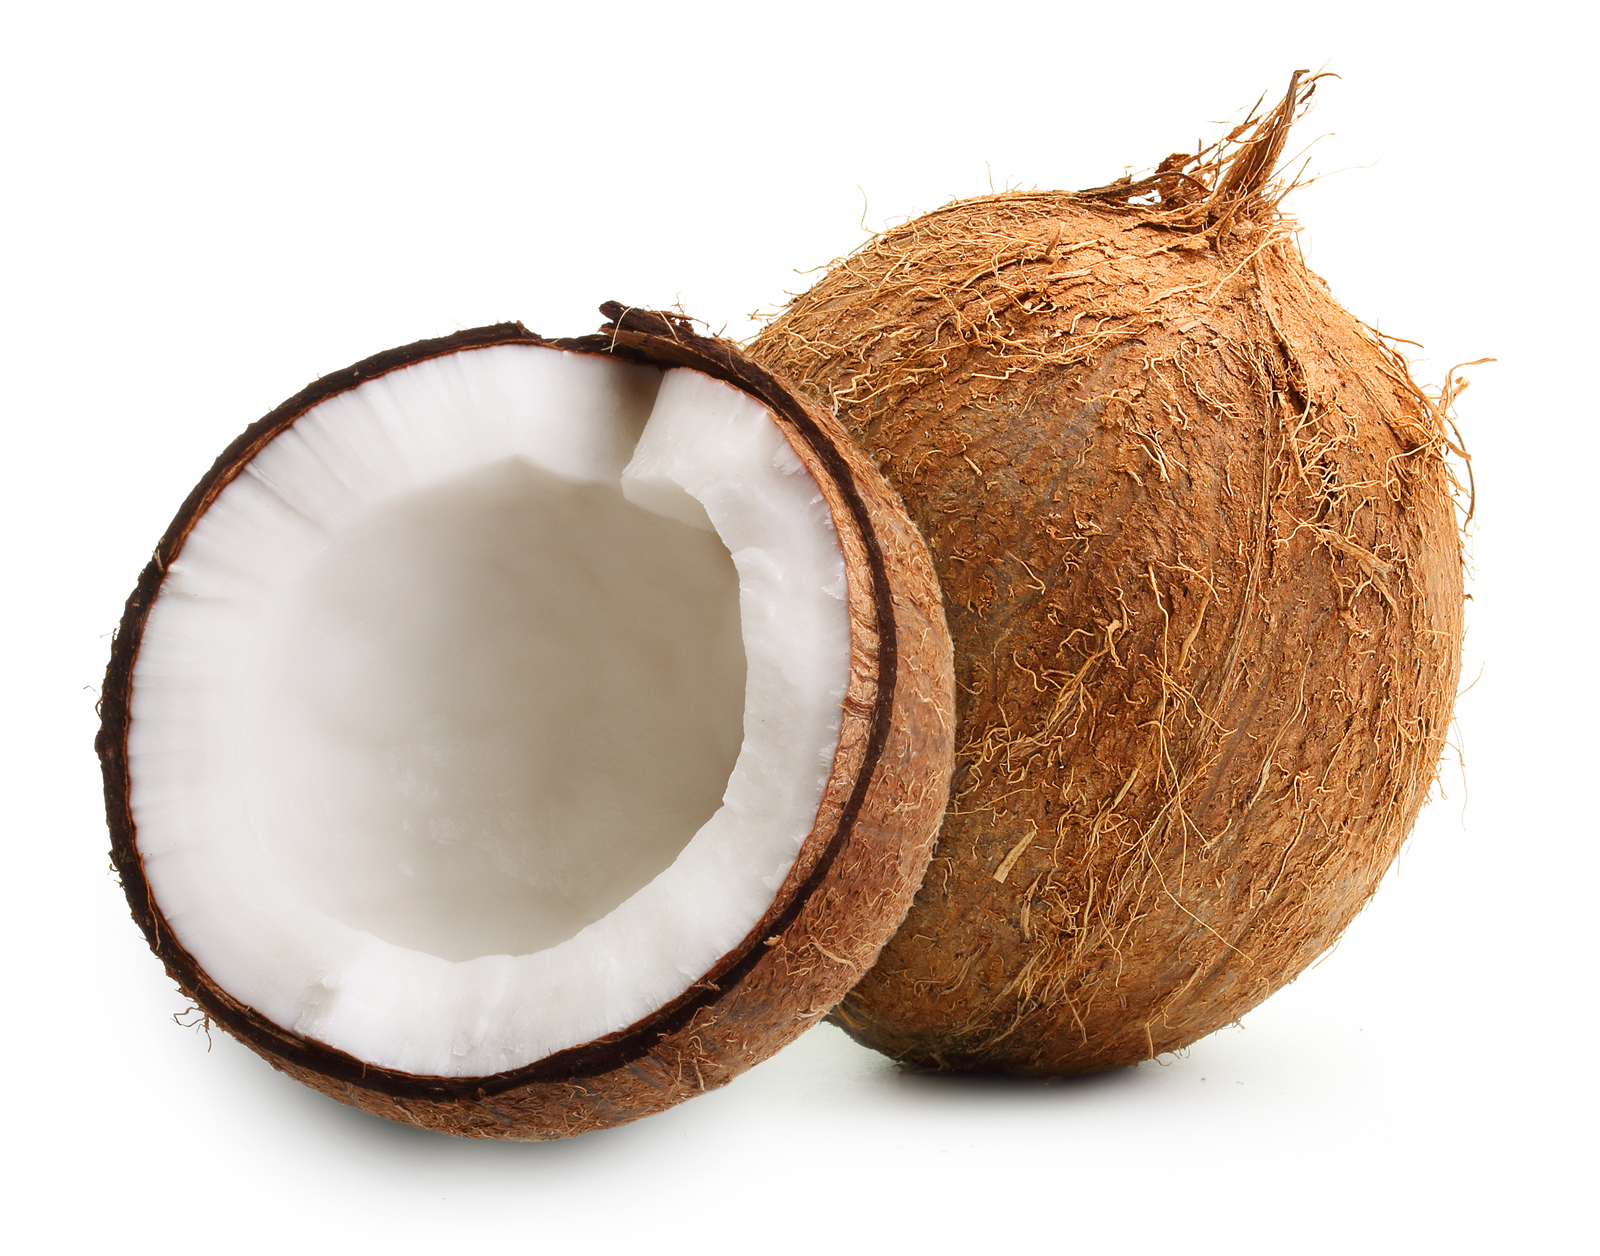 PunjabKesari, नारियल, श्रीफल, Coconut, Importance of Coconut in worship